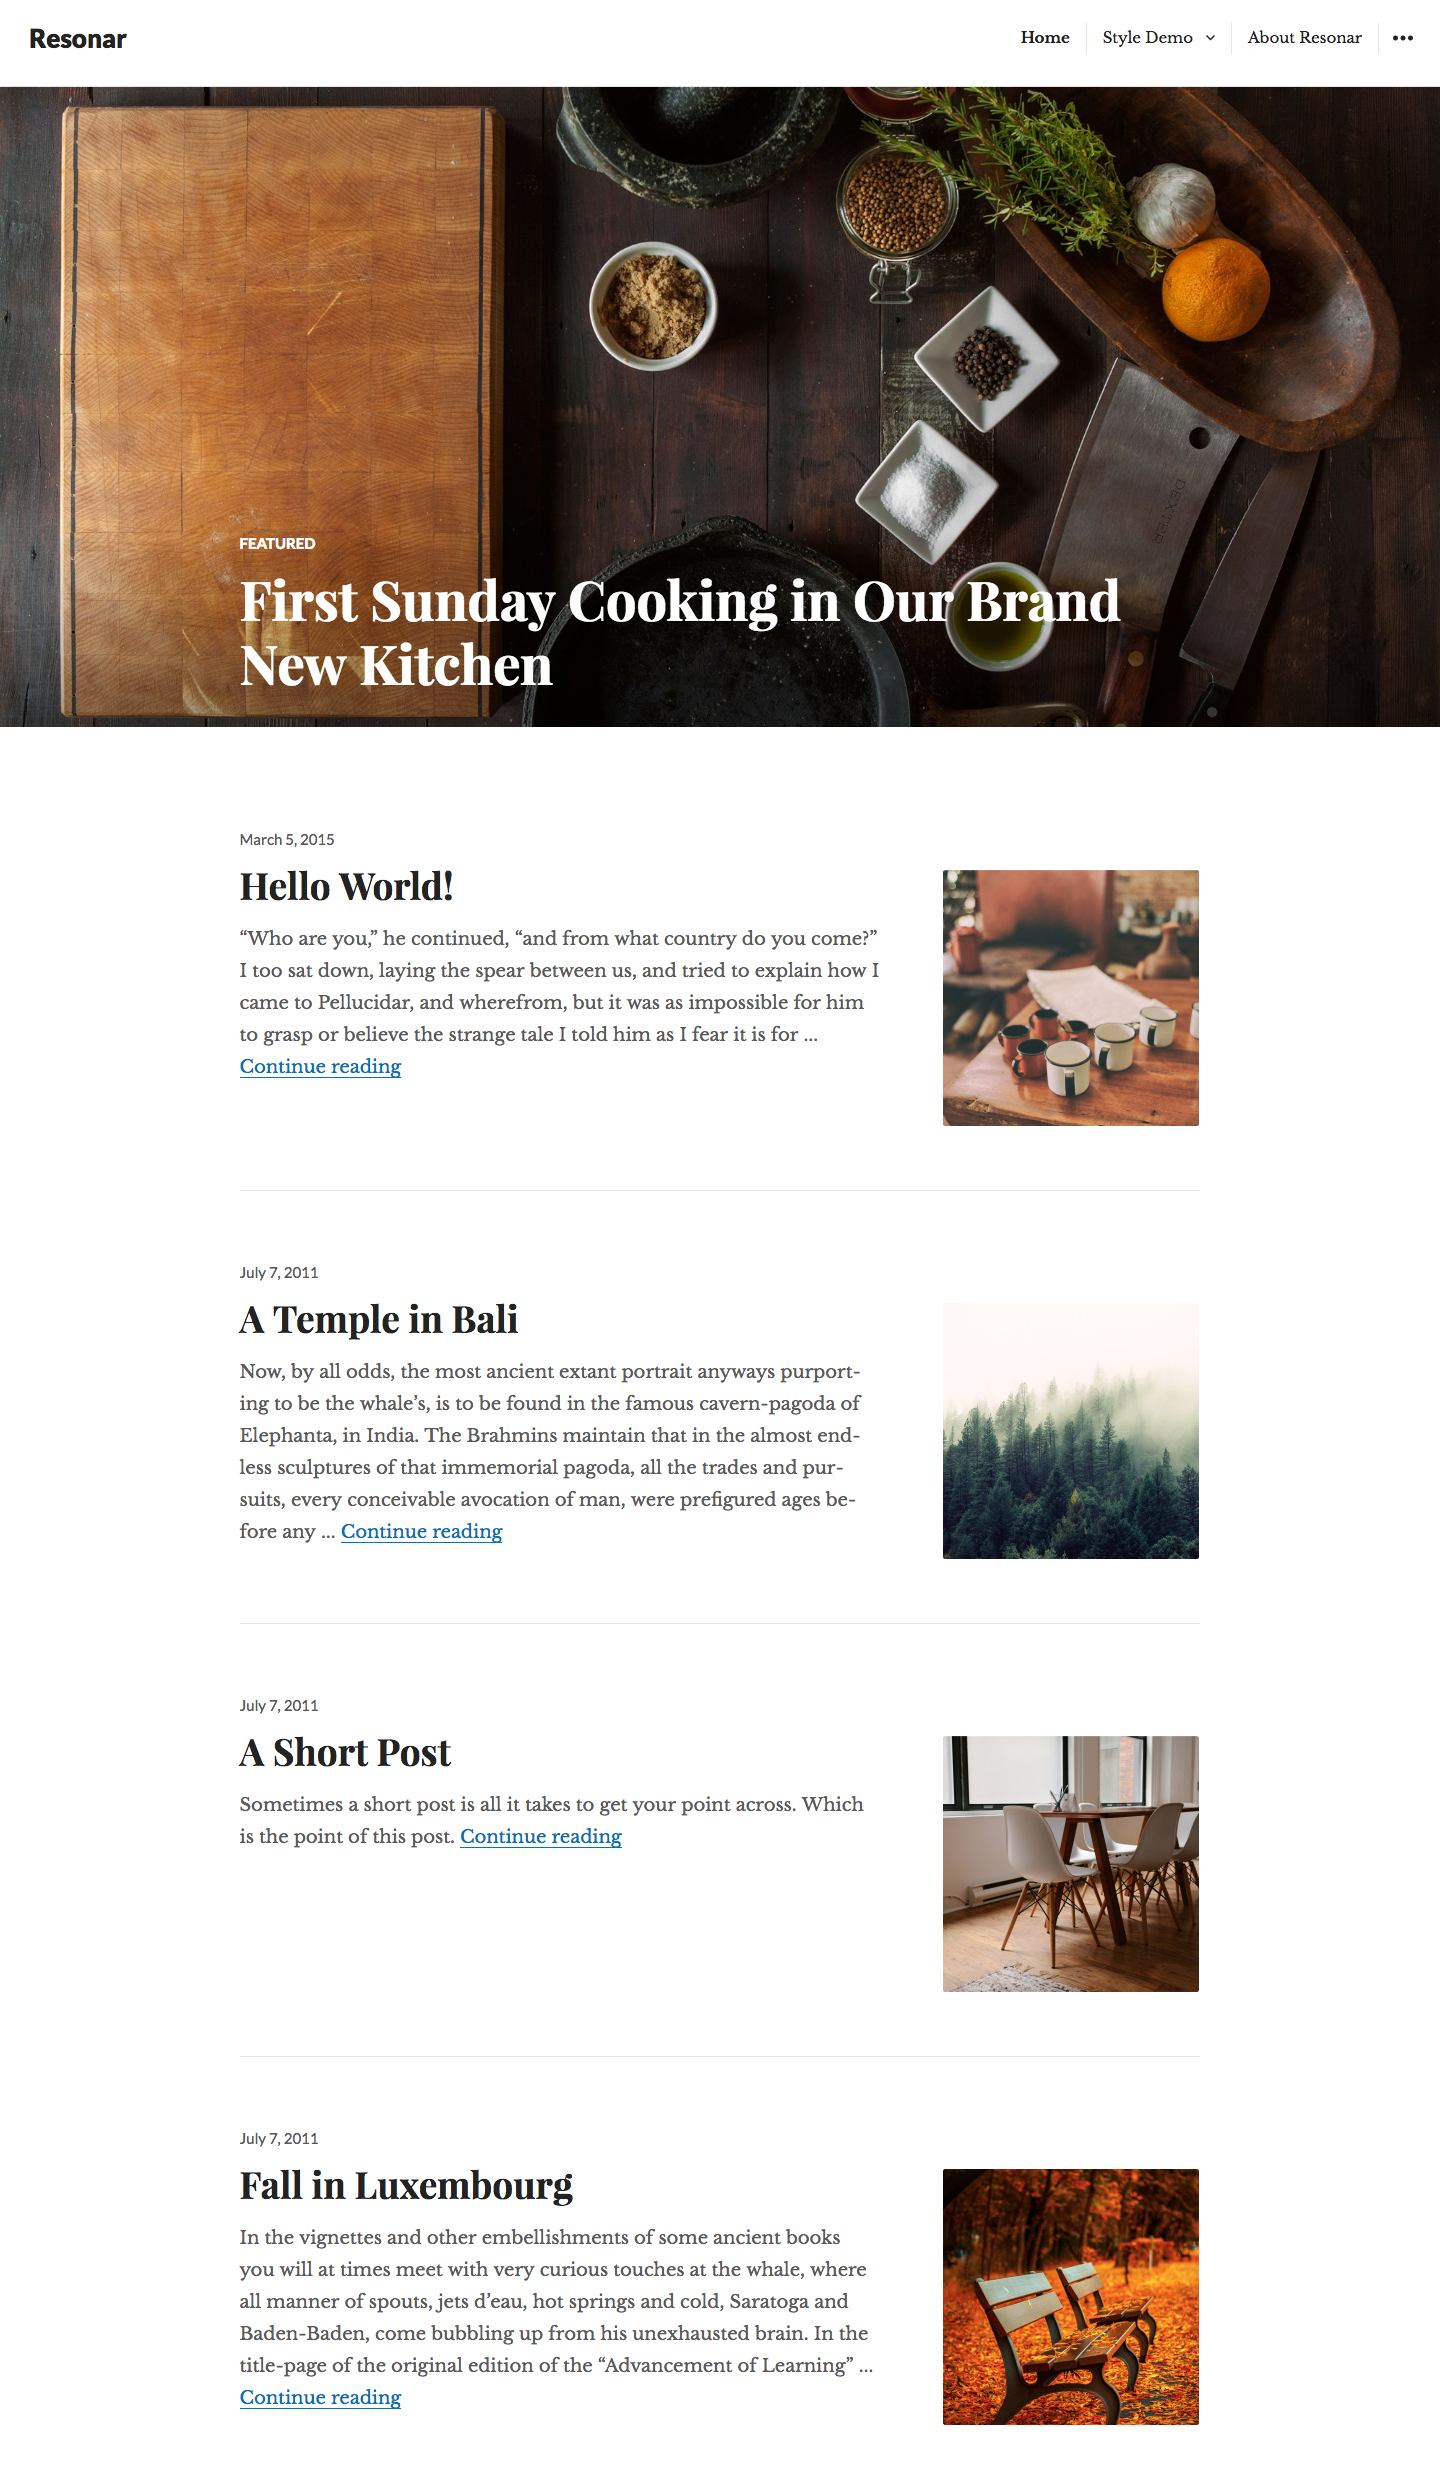 Resonar WordPress Theme